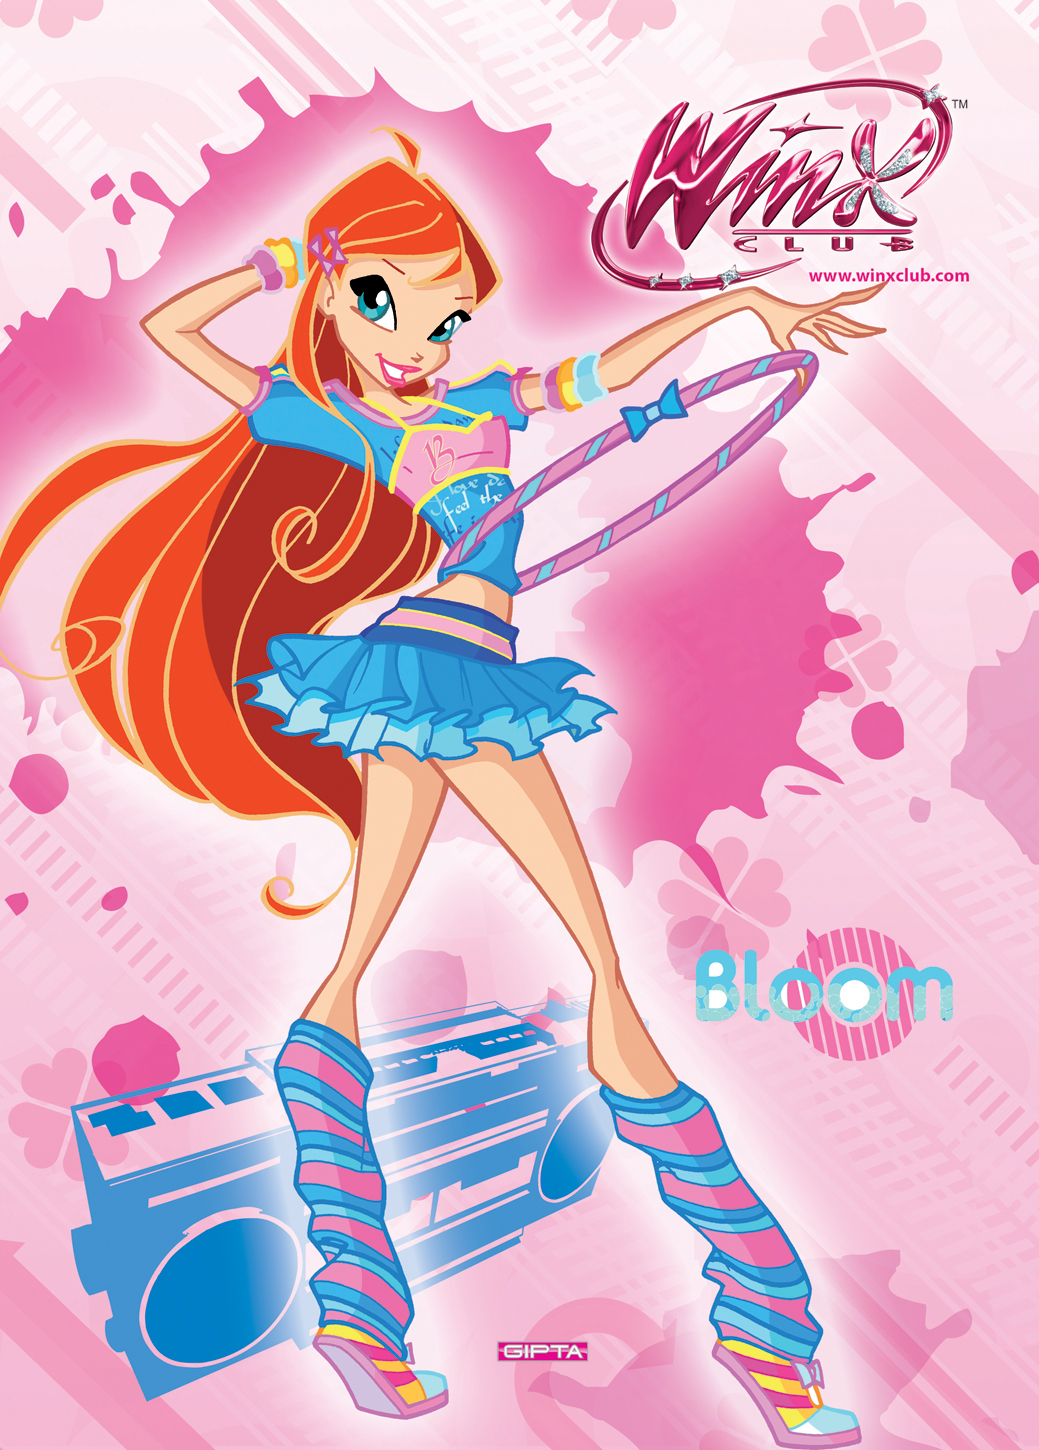 Winx club poppixie maya fox huntik